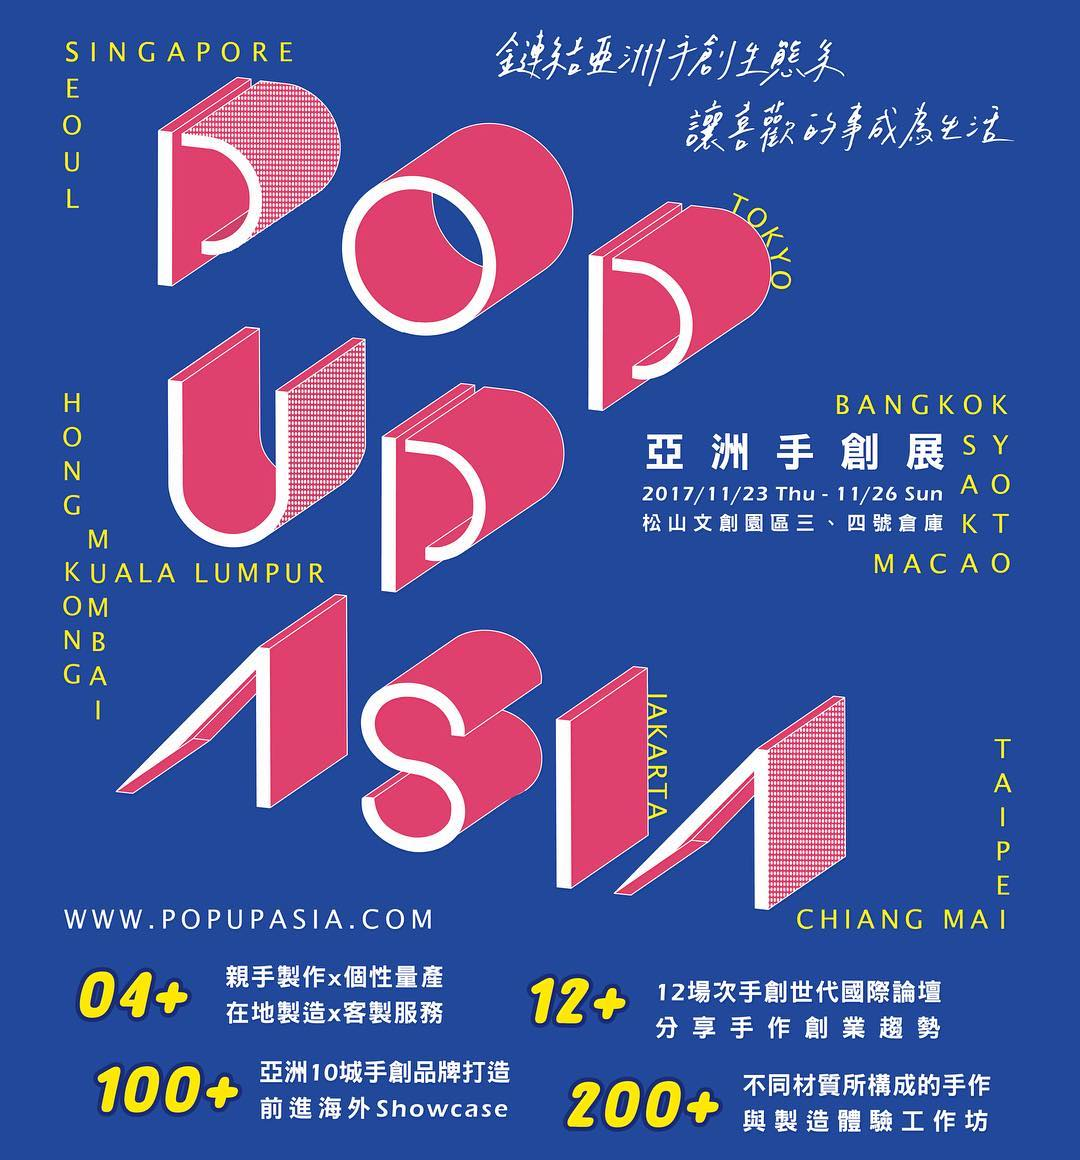 Pop Up ASia Taiwan - Venue: 松山文創園區 三、四號倉庫 / Songshan Cultural Creative Park, Warehouse 3 & 4Address: 1/223, Guangfu South Rd., Xinyi Dist., Taipei - TaiwanDate: 23 - 26 November 2017Booth: C09♦️ Read my blog diary about: Pop Up Asia 2017